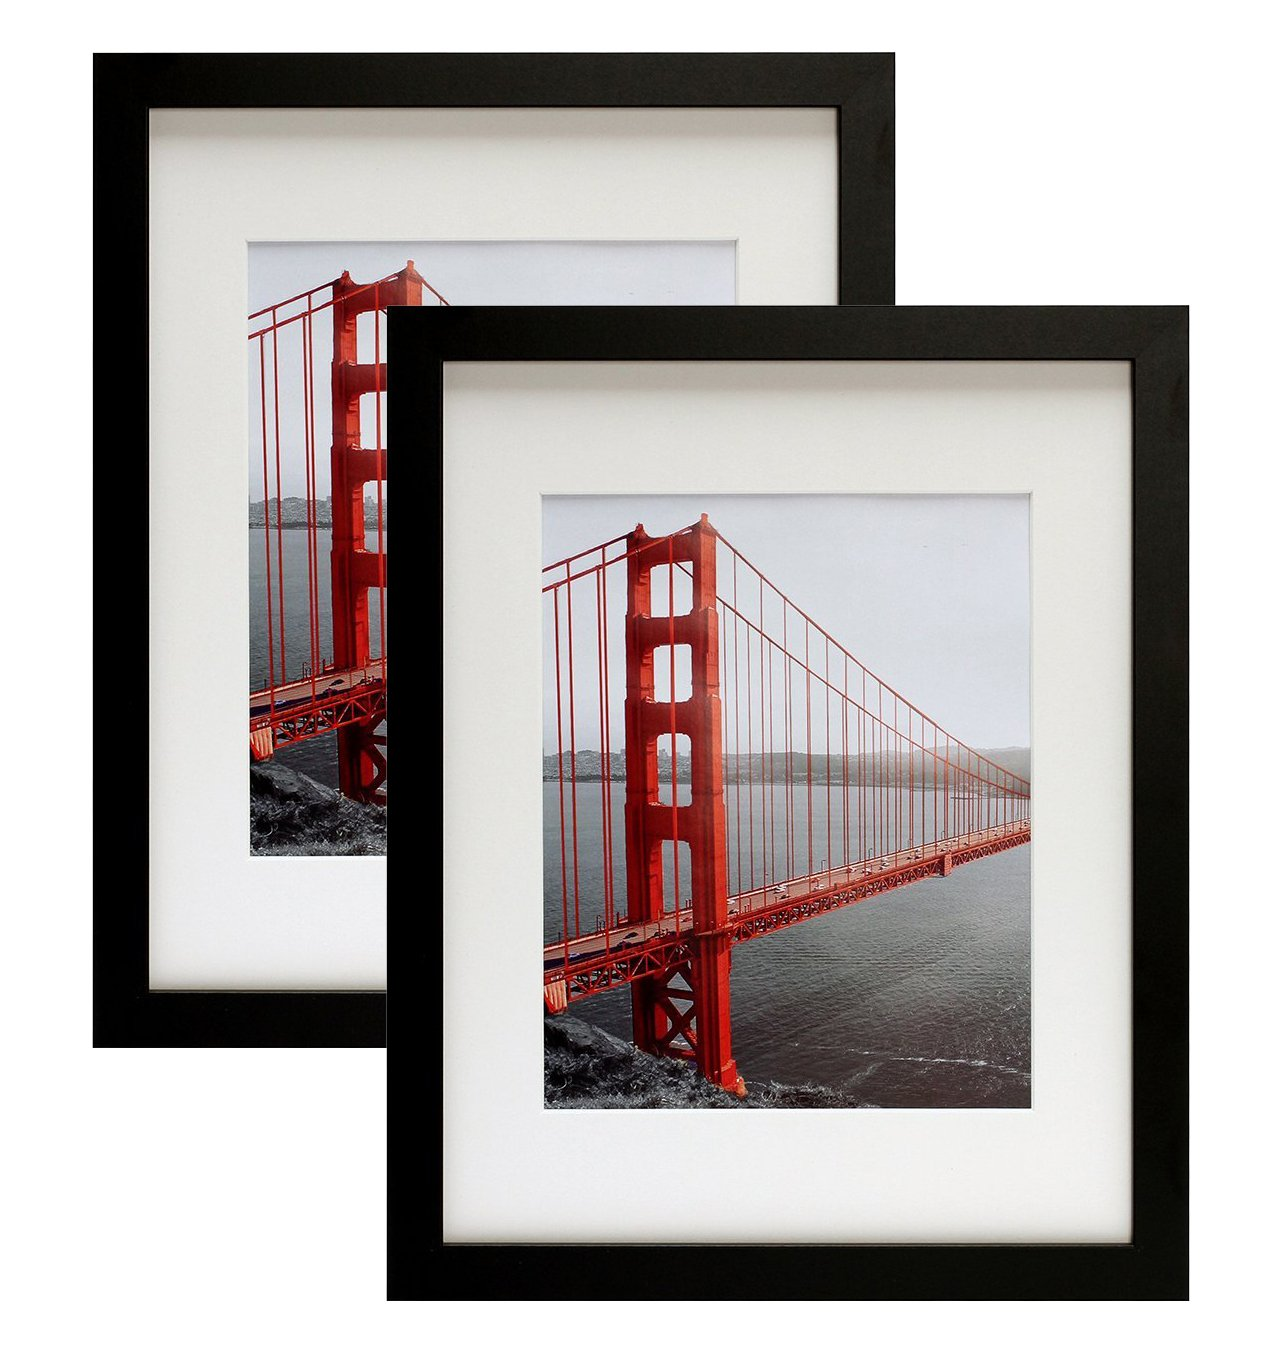 Frametory, Two 11x14 Contemporary Black Picture Frames - Wide Molding - Wall Mounting Ready (2 pc, 11x14) by Frametory